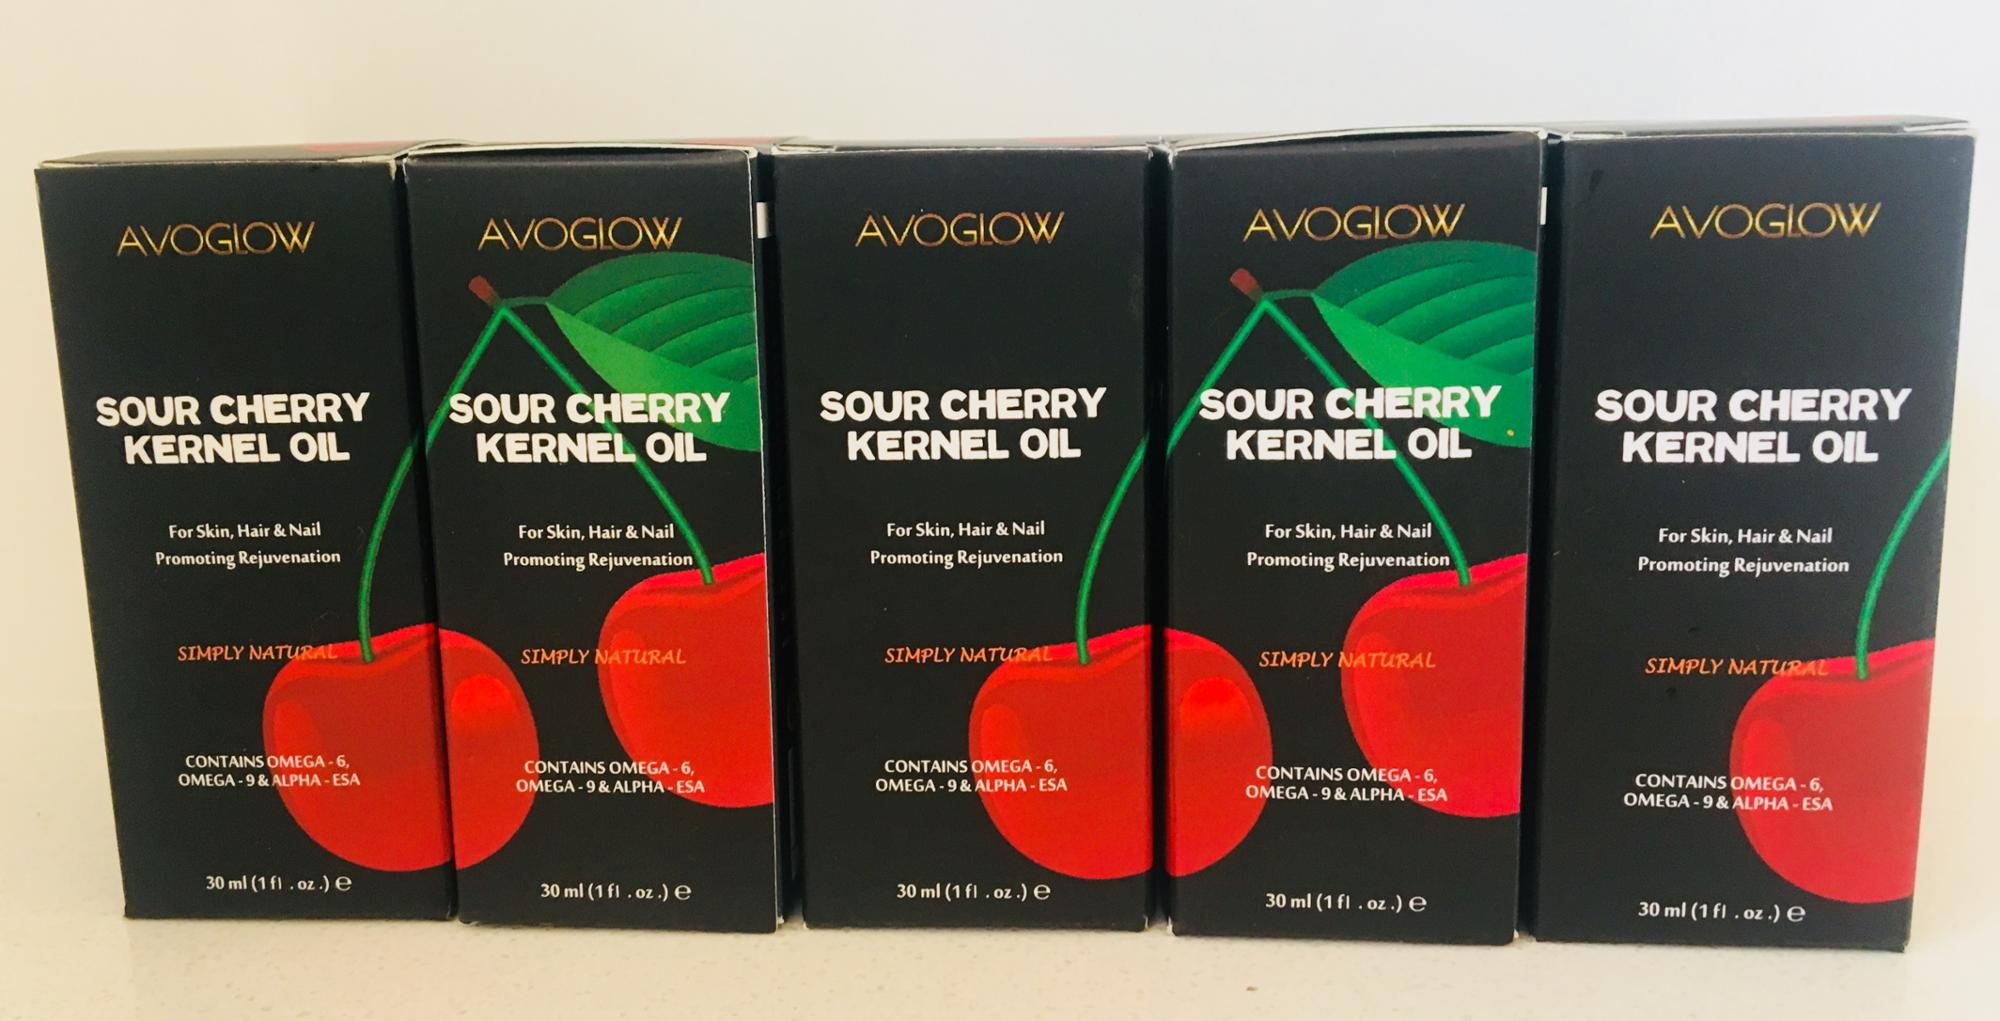 Sour Cherry Kernel Oil - 100% Natural Cold-Pressed - No Additives - Anti-aging and anti-wrinkles